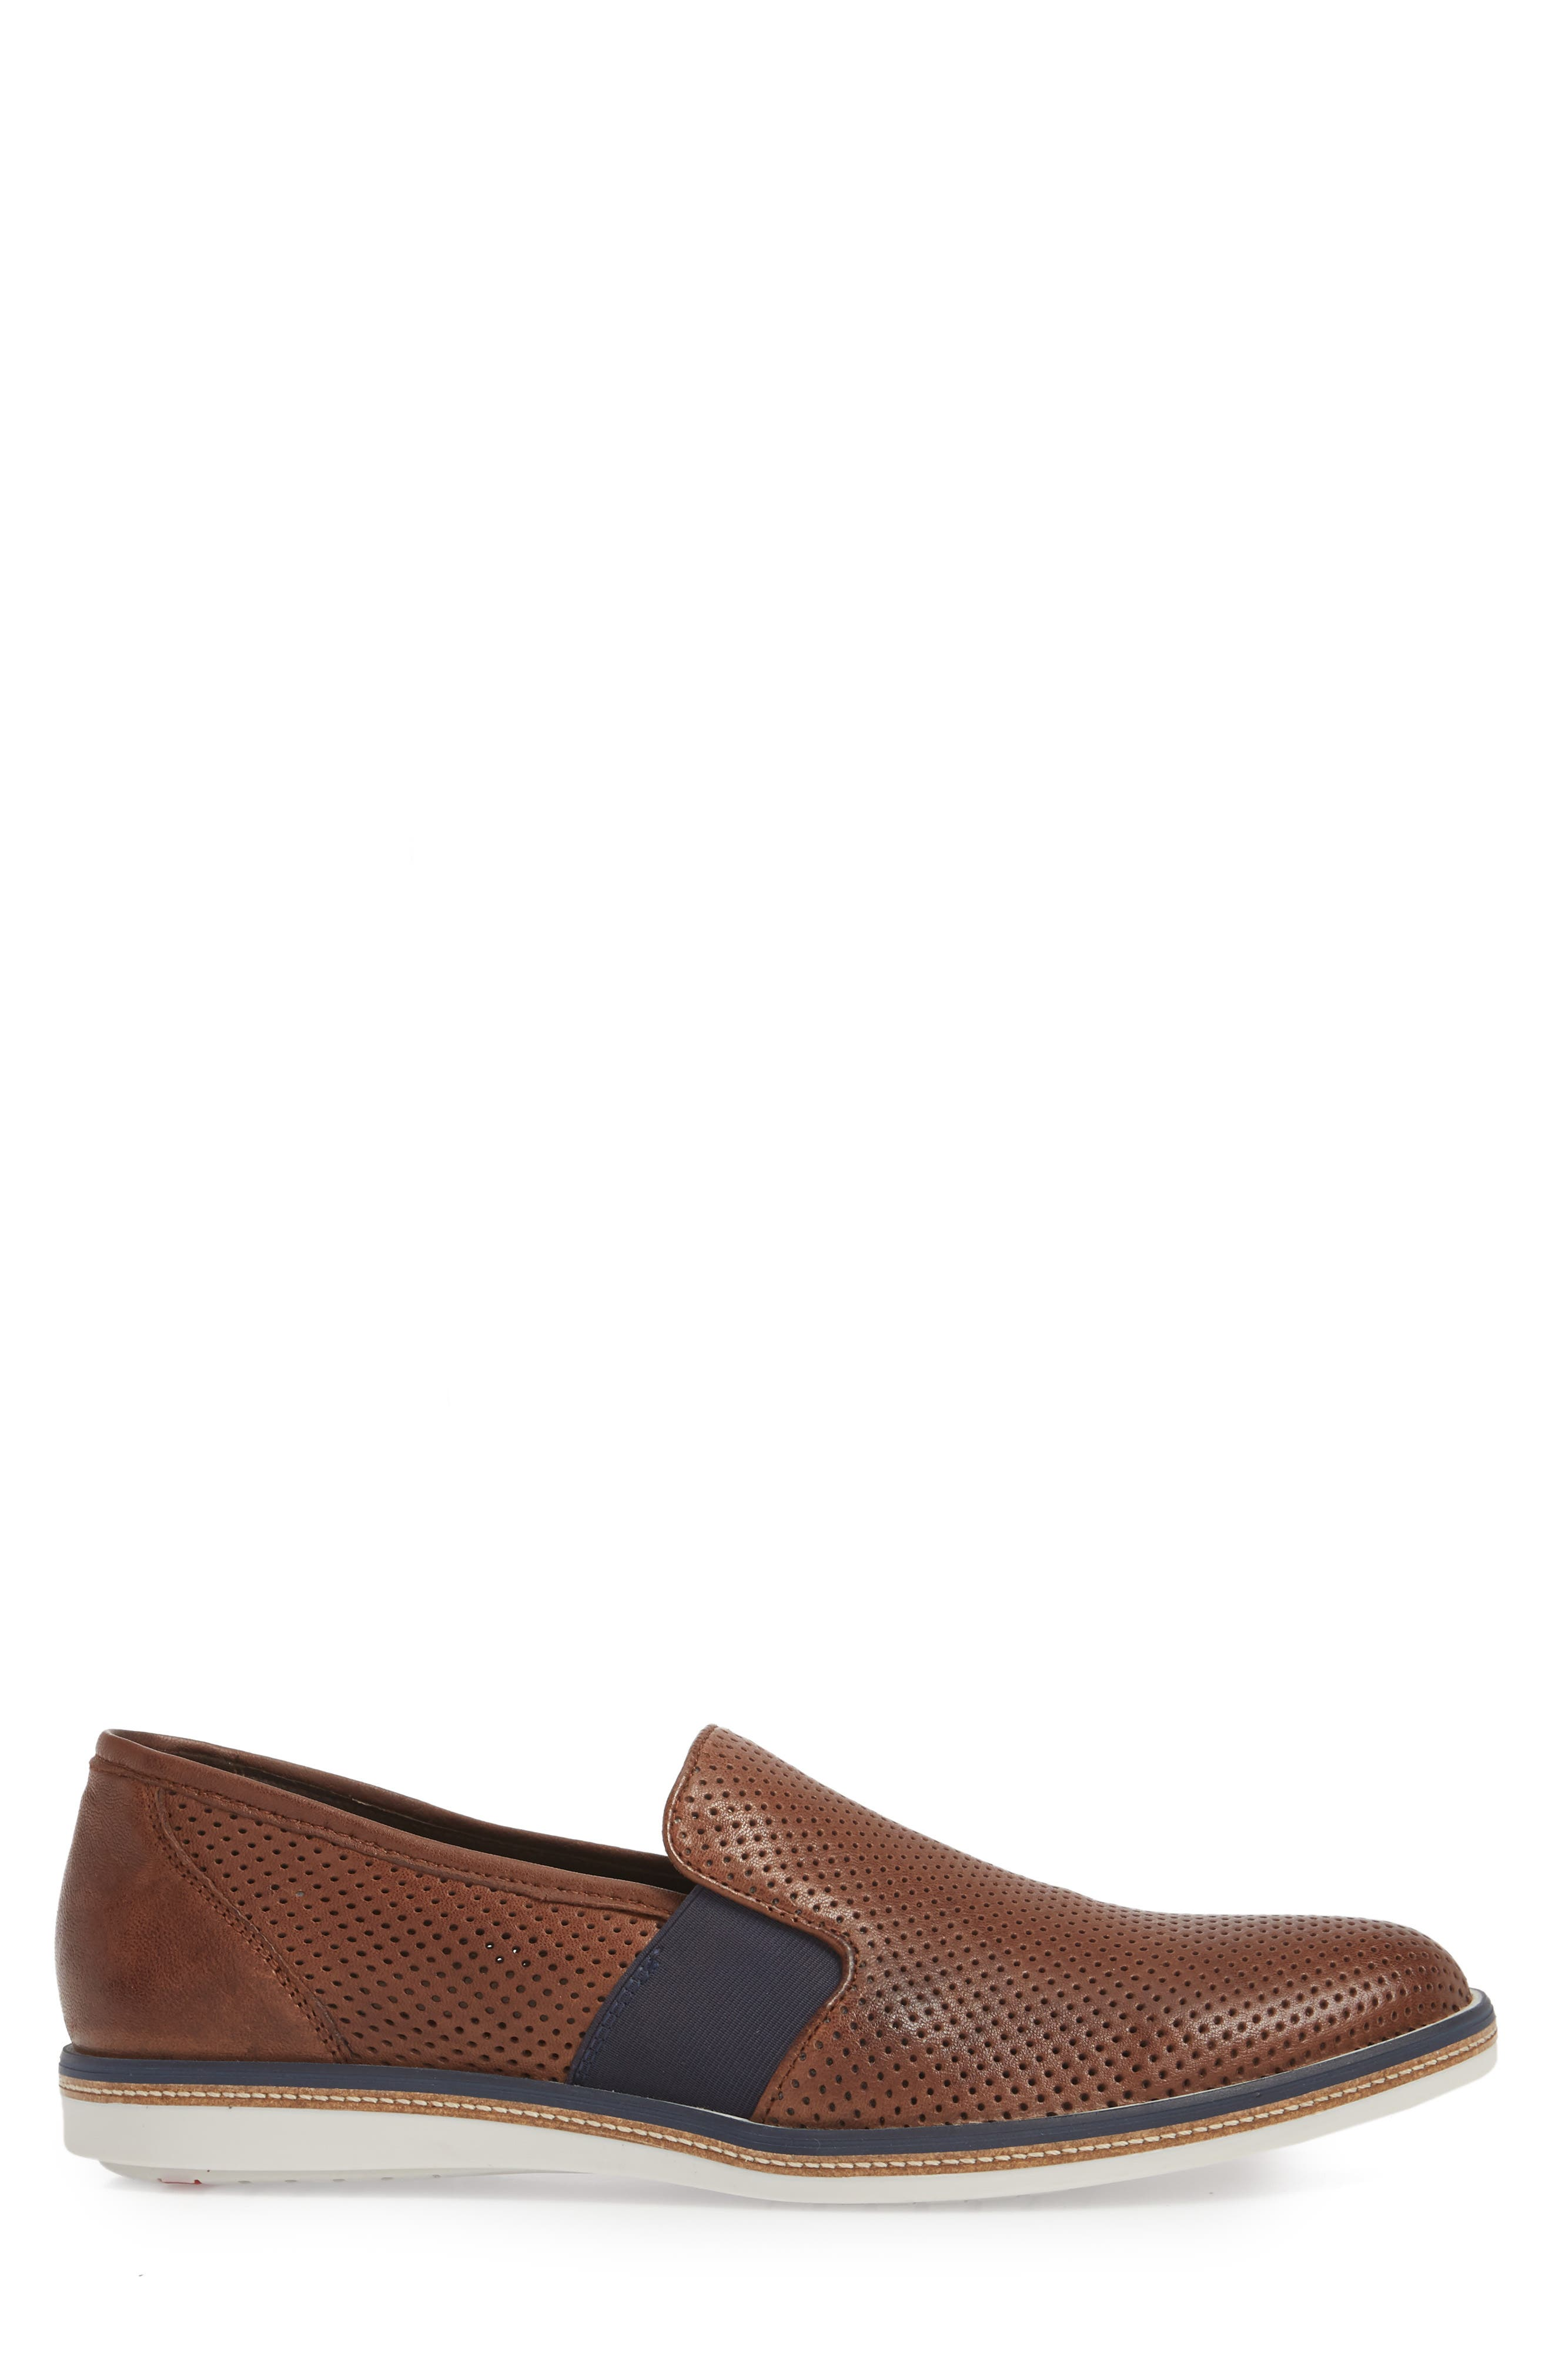 Alister Perforated Loafer,                             Alternate thumbnail 3, color,                             Tobacco Leather